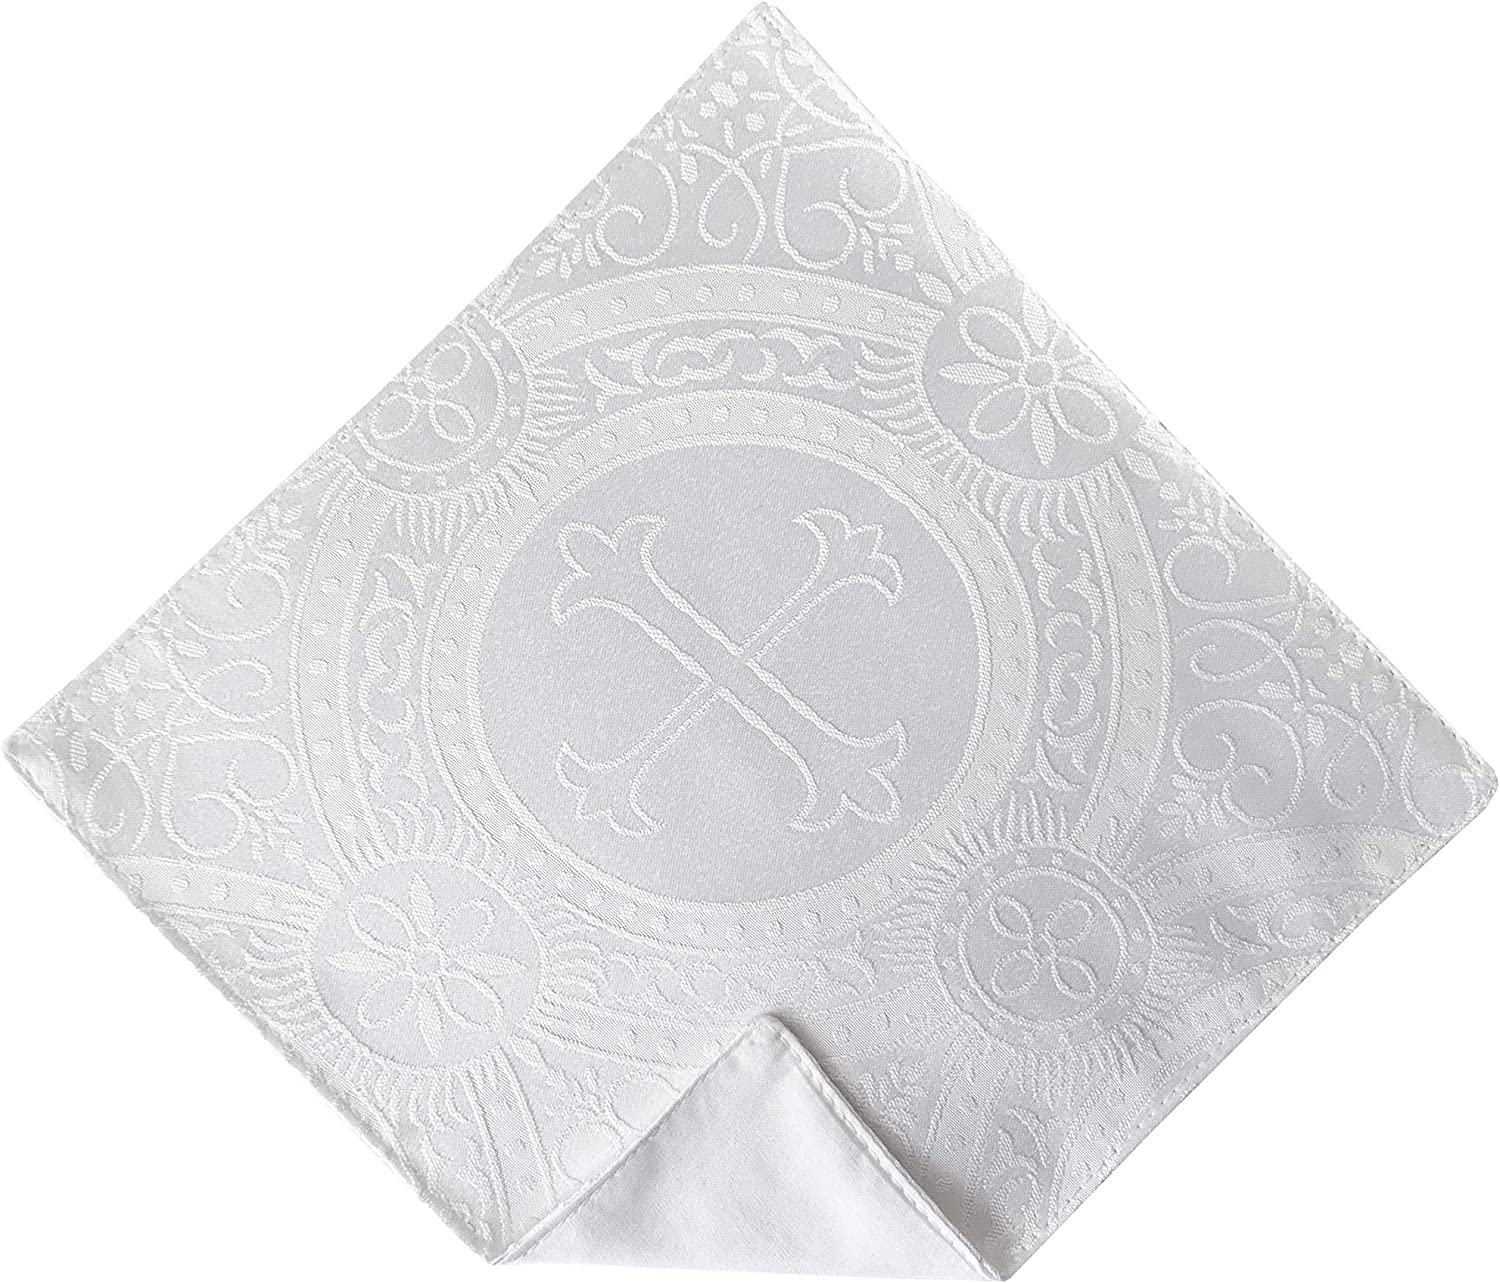 Don't miss the campaign Holiday Bow Ties Boys First Clergy Spring new work Communion Square Holy Pocket